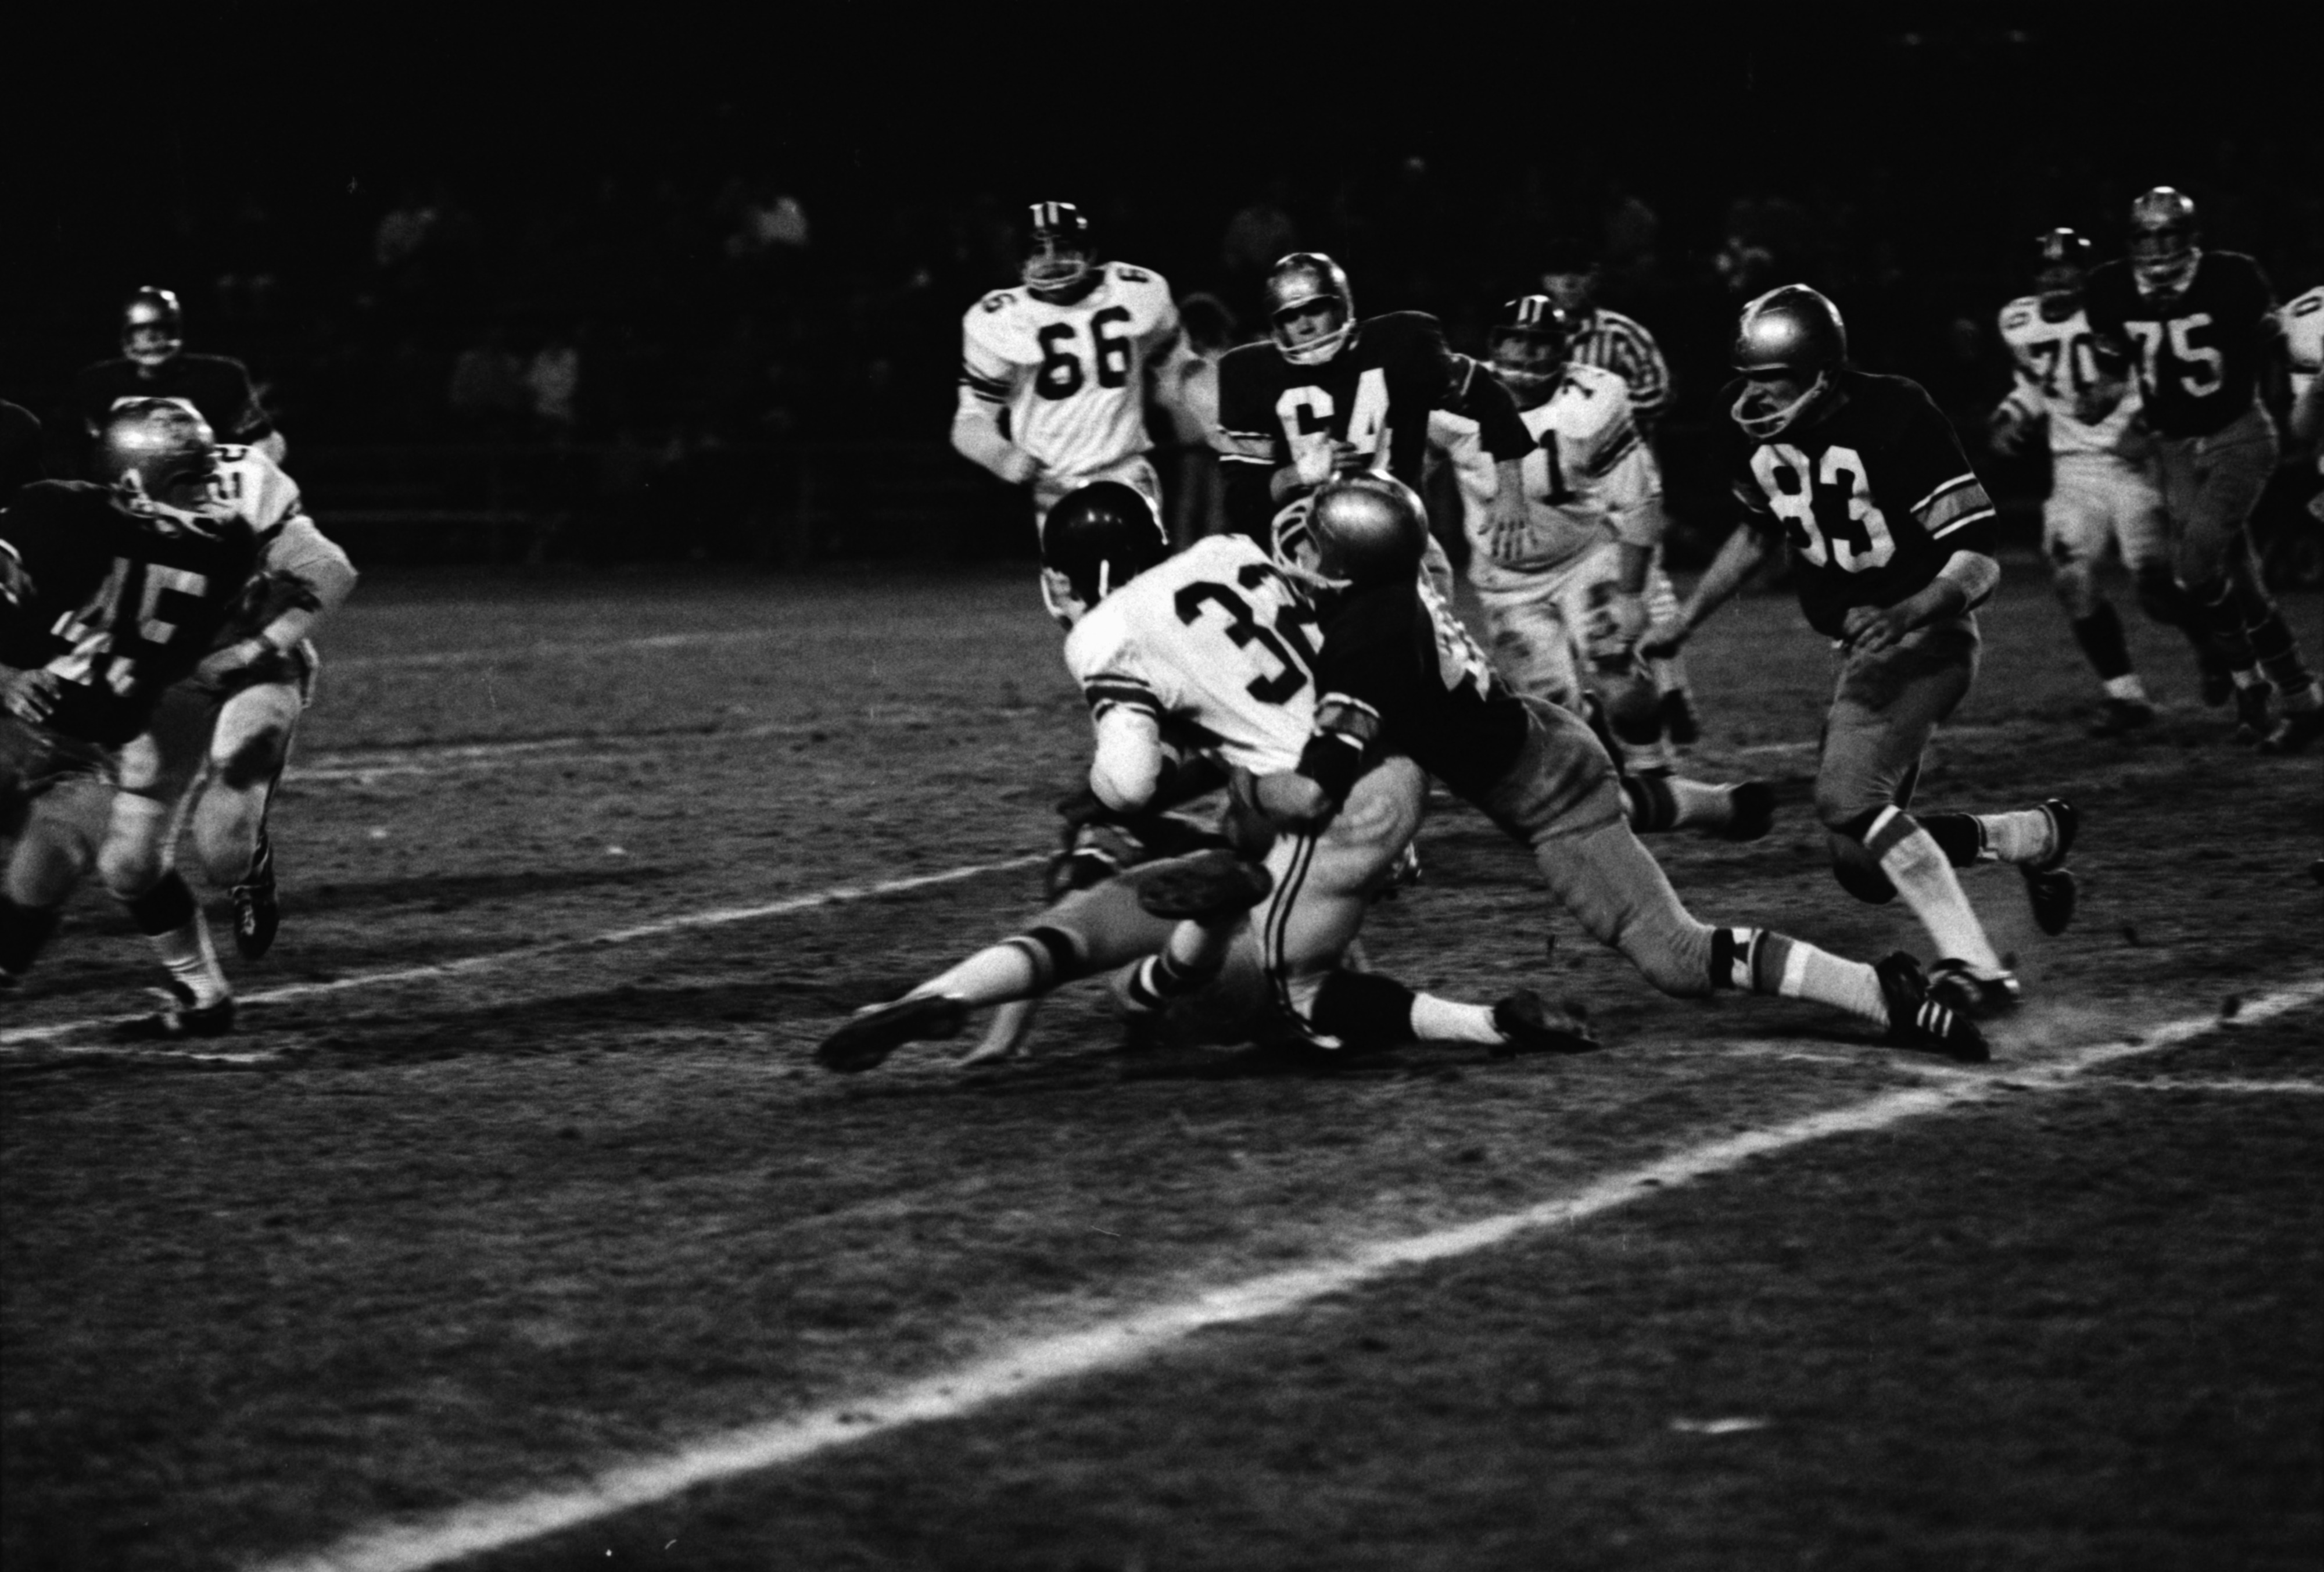 Football: Huron High School Vs Battle Creek Lakeview High School, October 1969 image